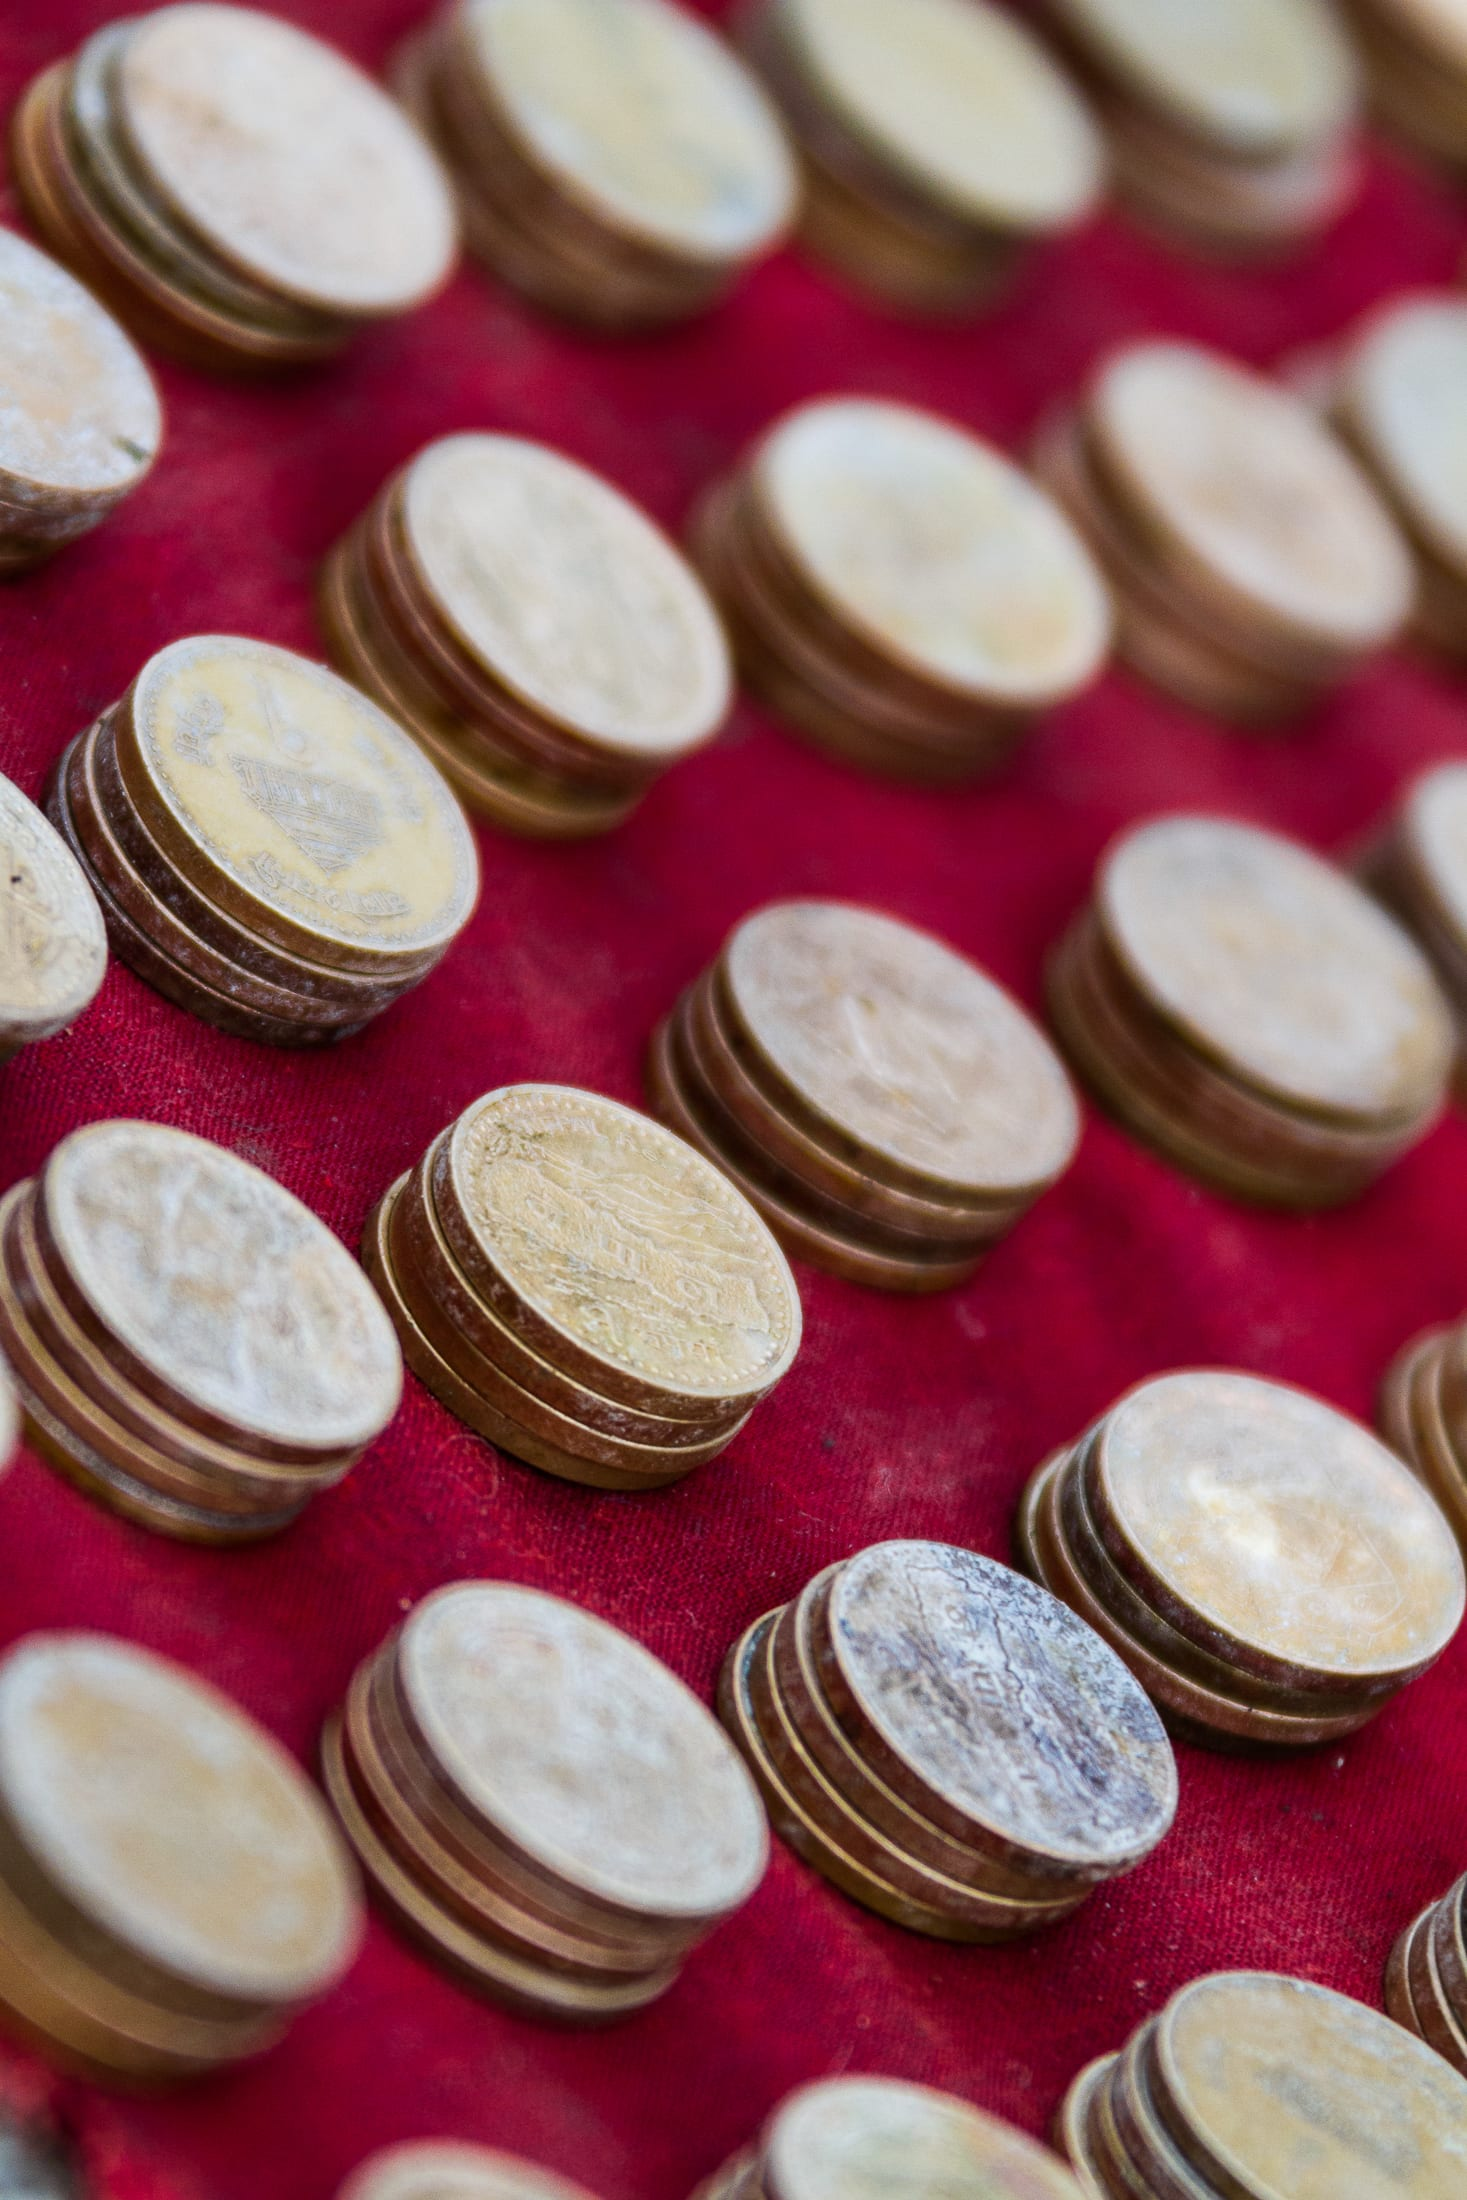 Stack of coins – Nepal